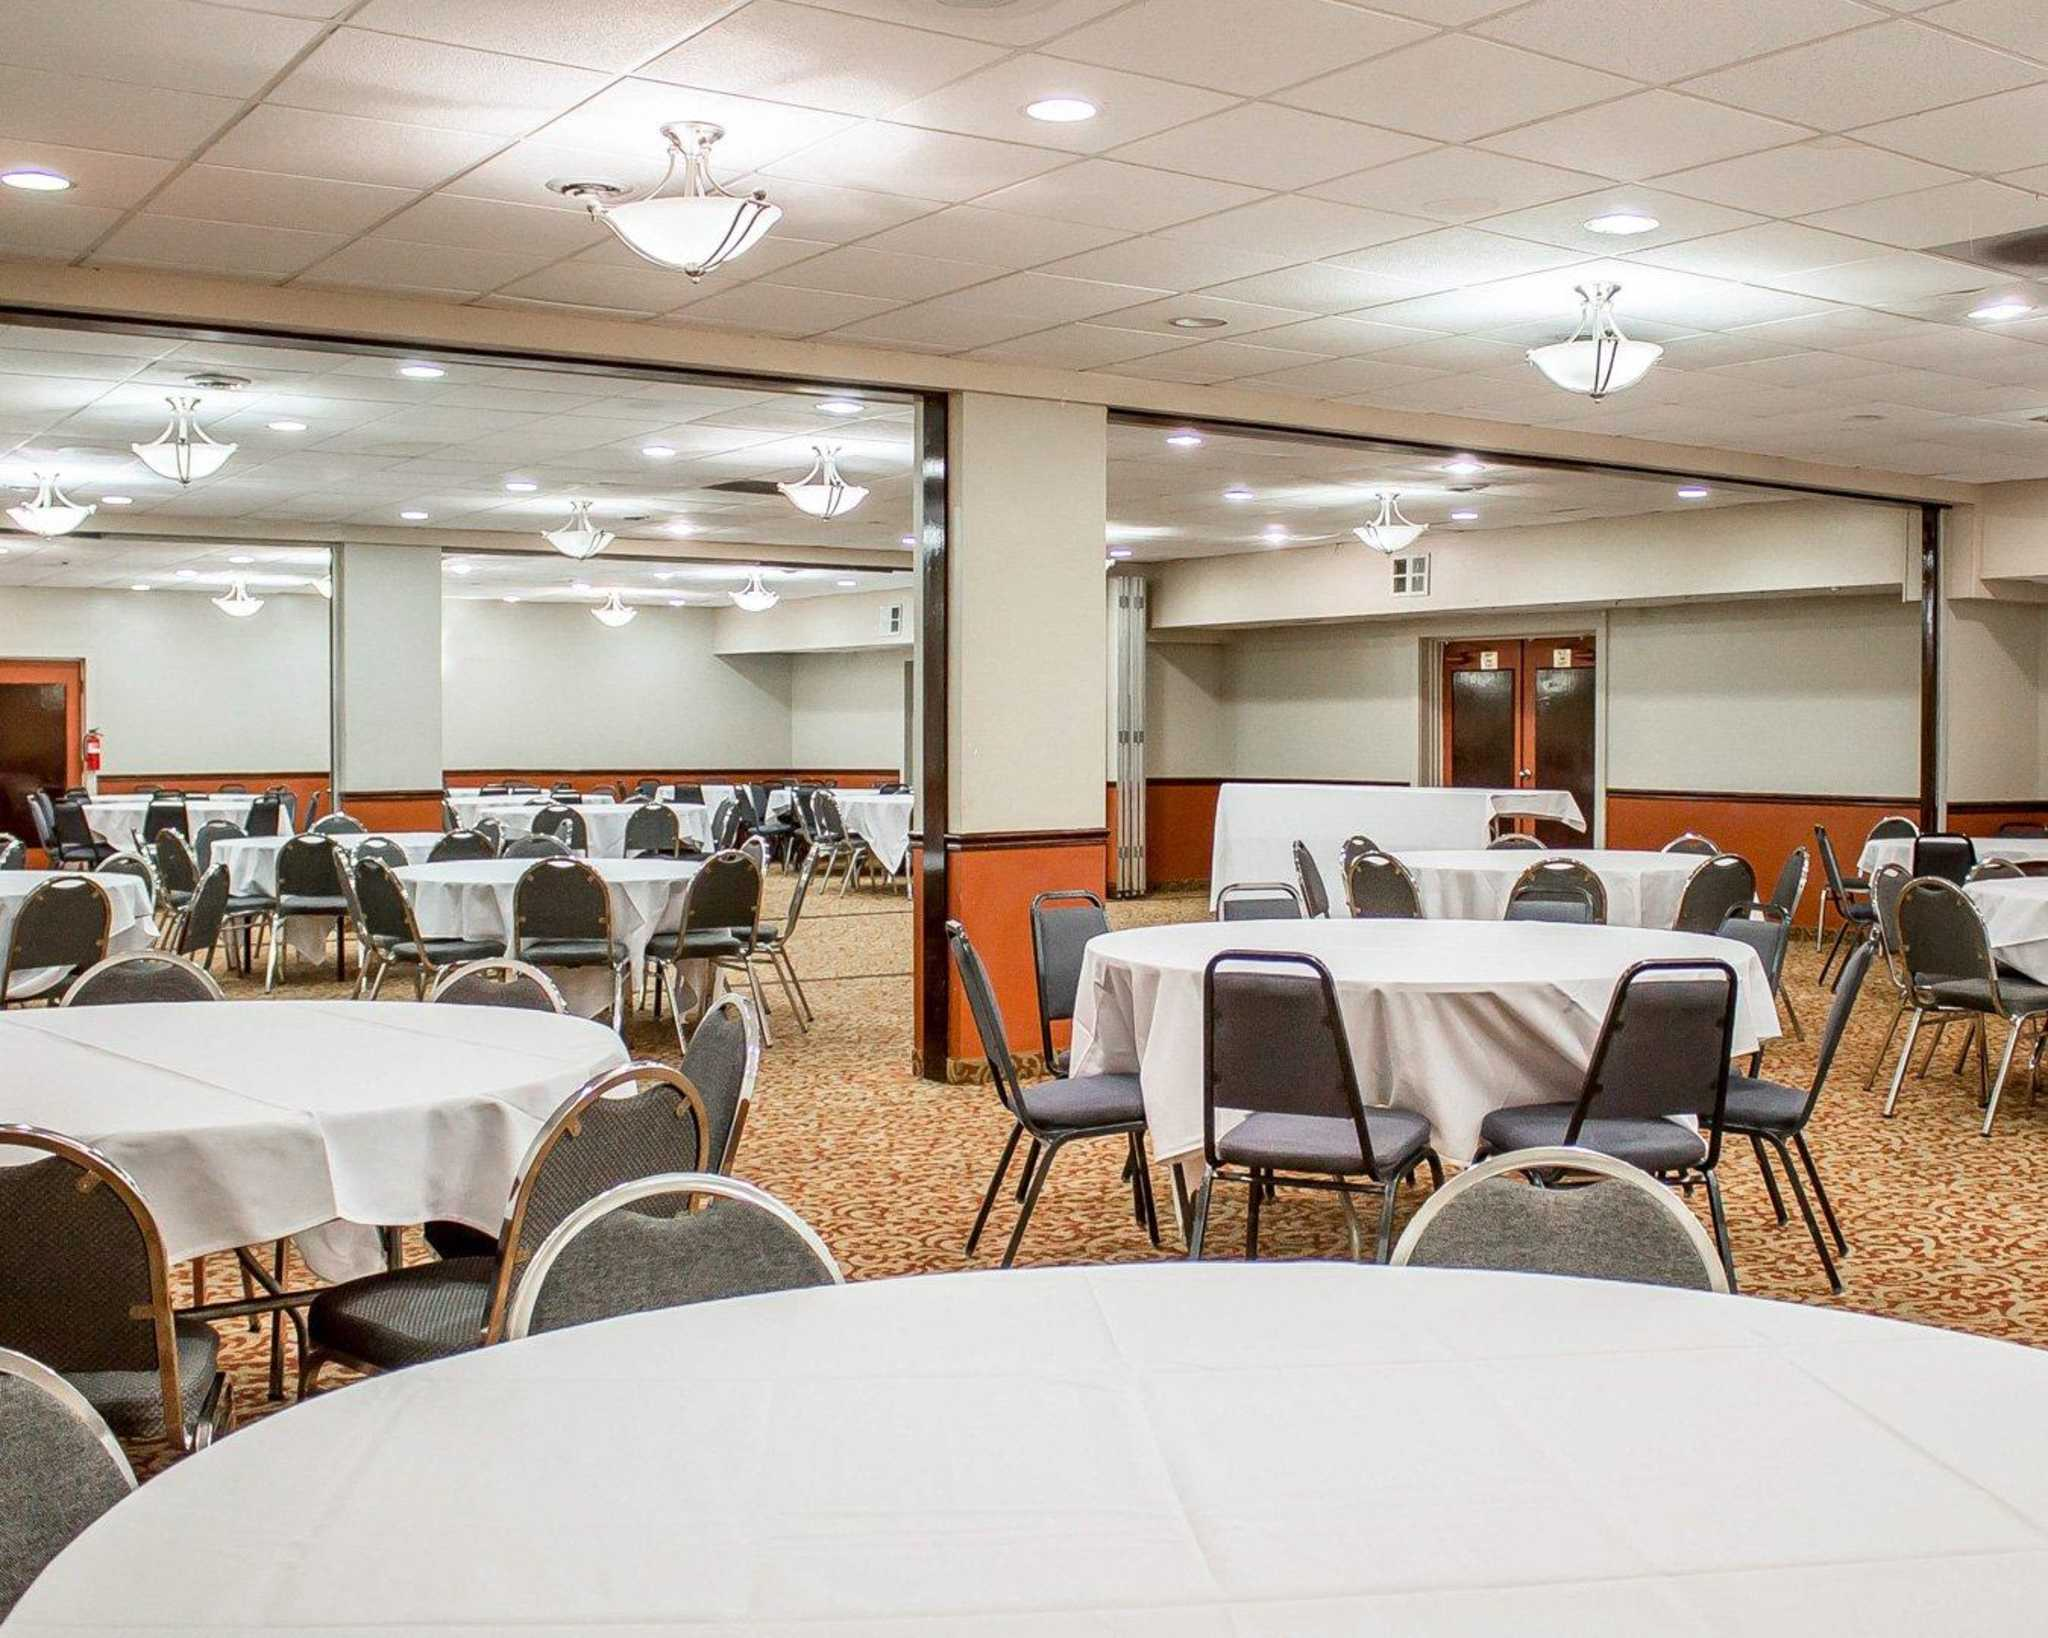 Comfort Inn North Conference Center image 32